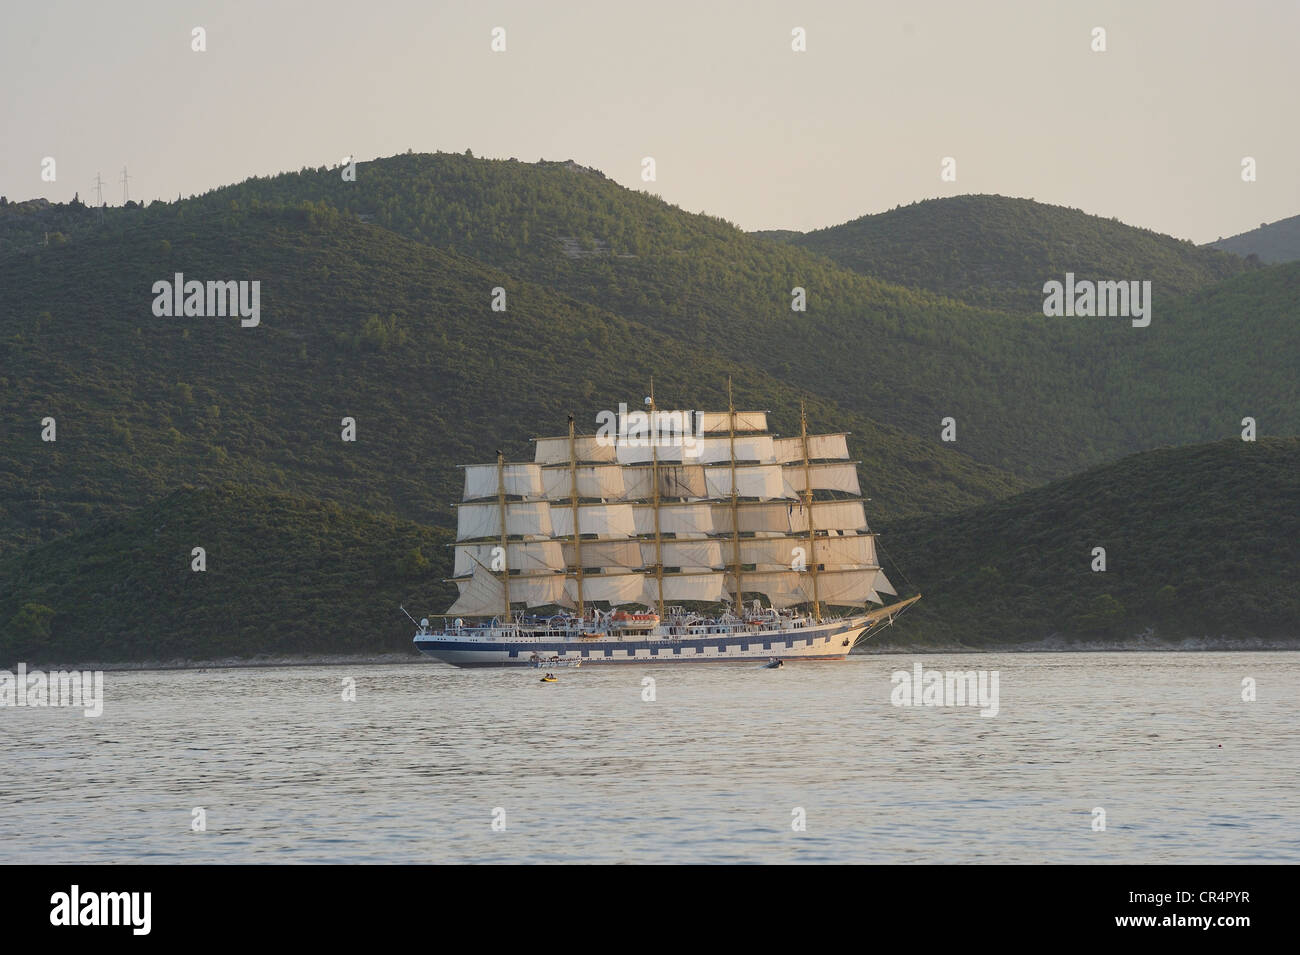 5 Masted Sailing Cruise Ship Royal Clipper Off The Island Of Stock Photo Royalty Free Image ...